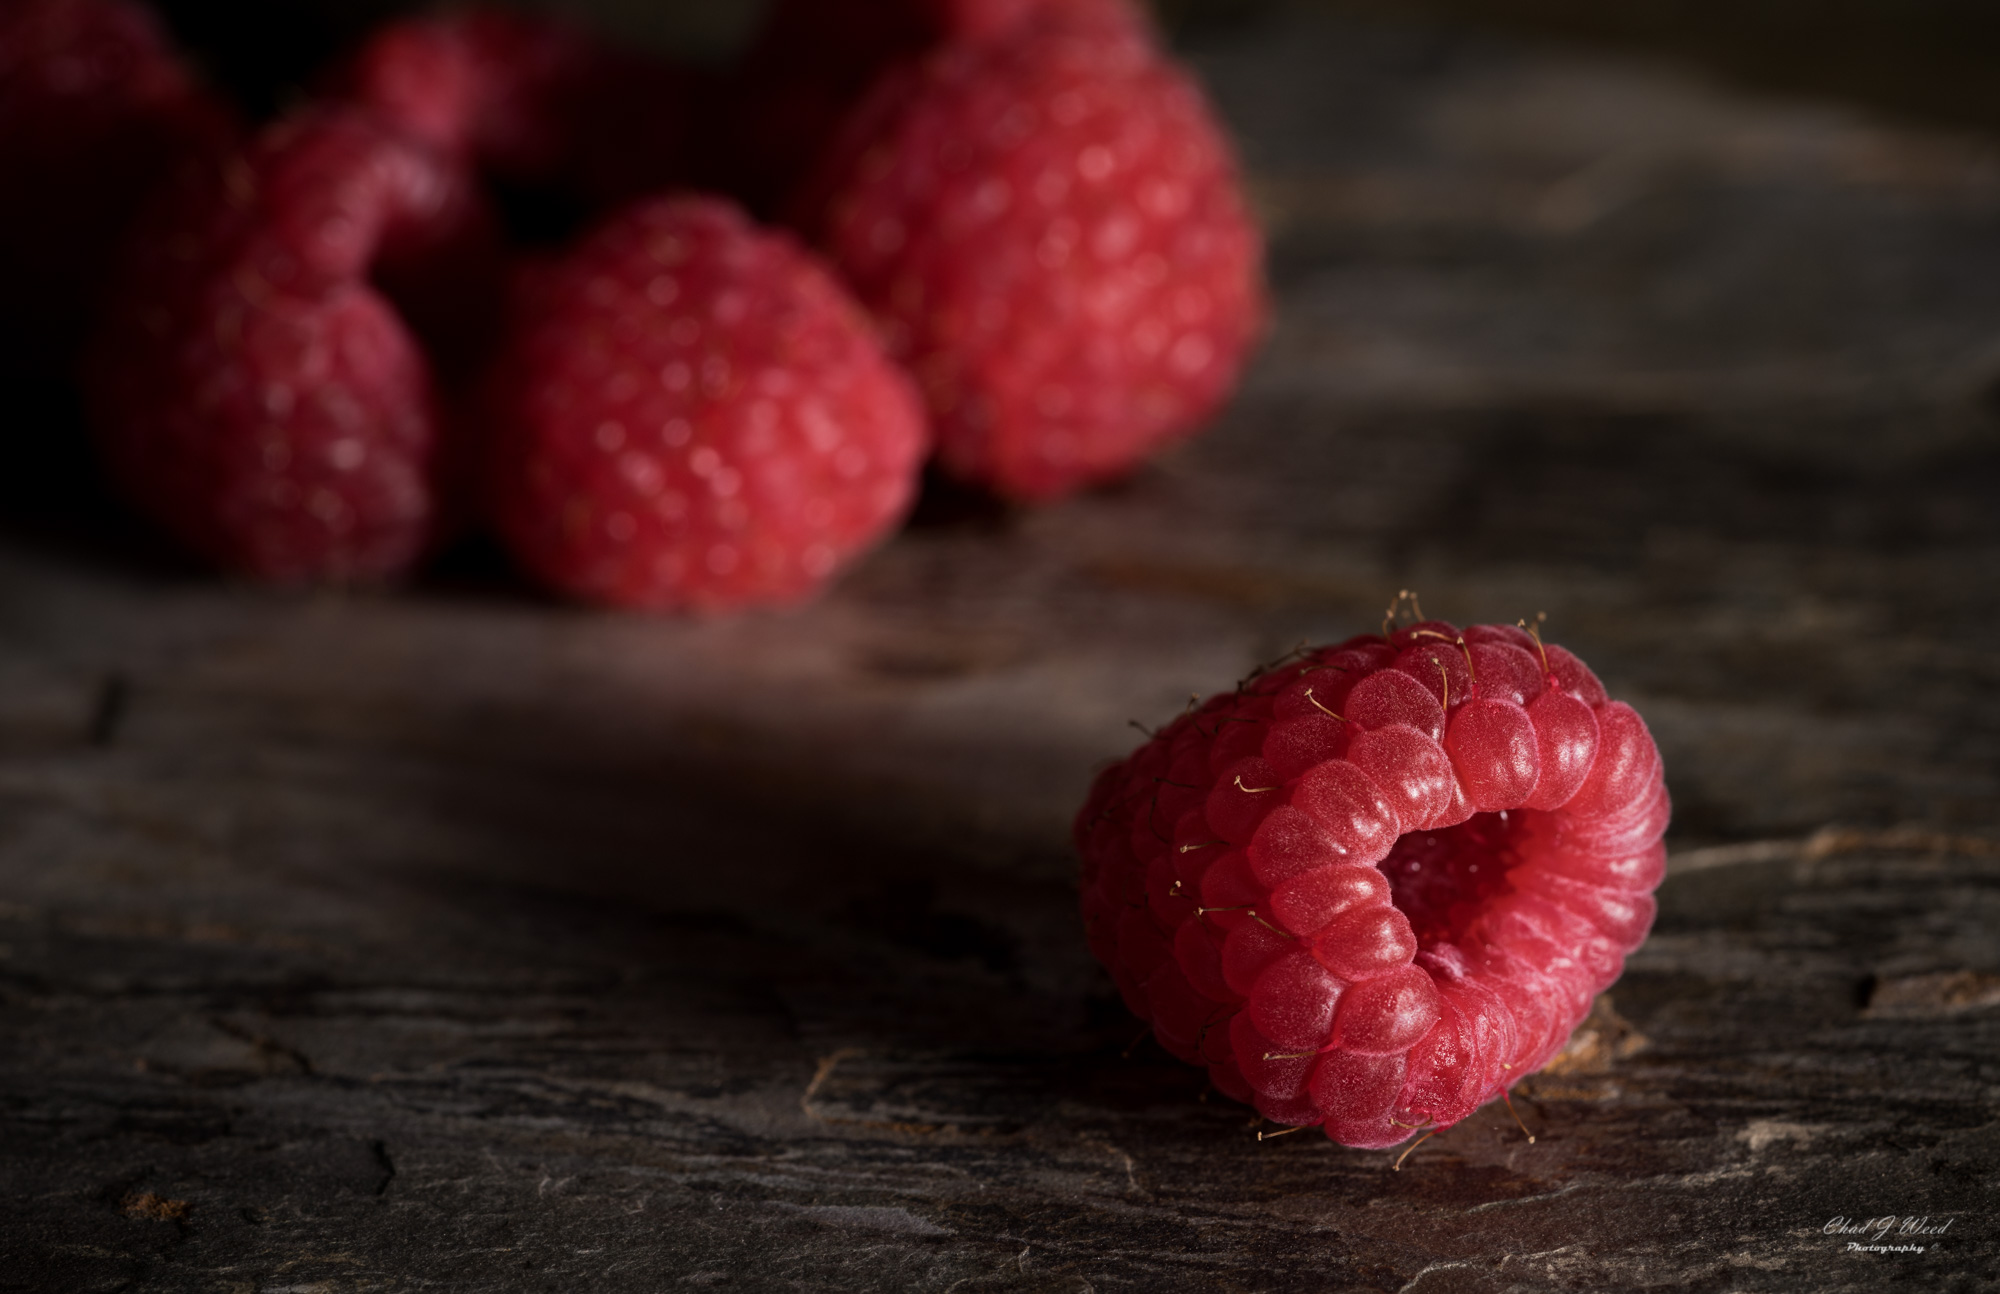 Raspberries by Arizona Commercial Food Photographer Chad J Weed